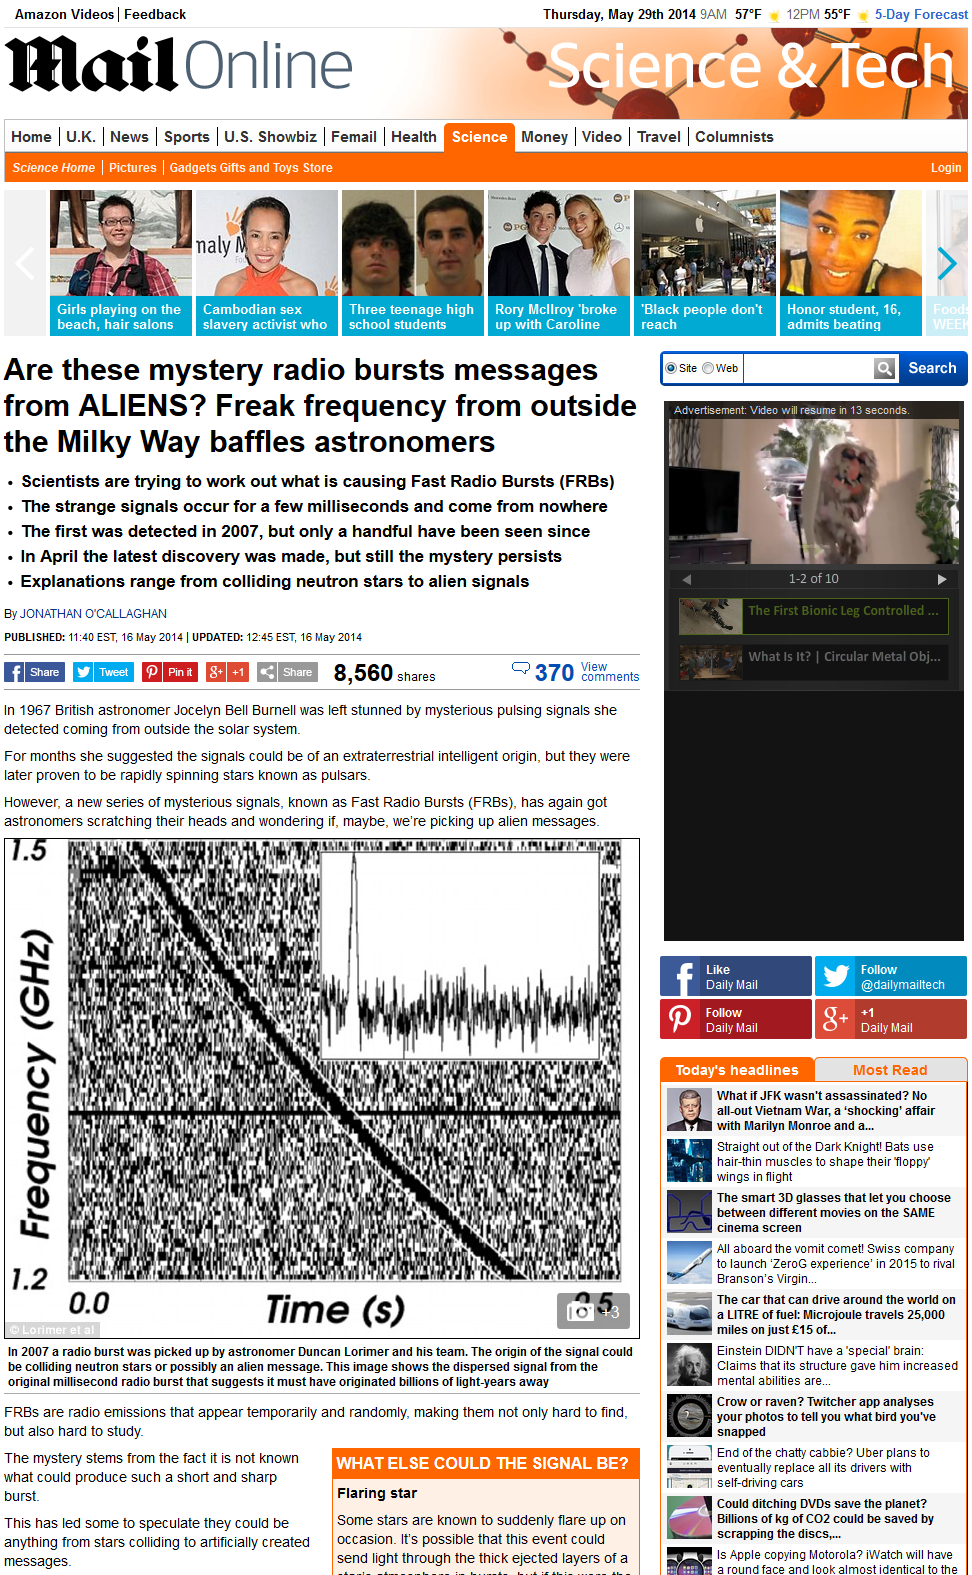 Daily Mail plagiarizes Planetary Society Blog guest post by Katherine Mack